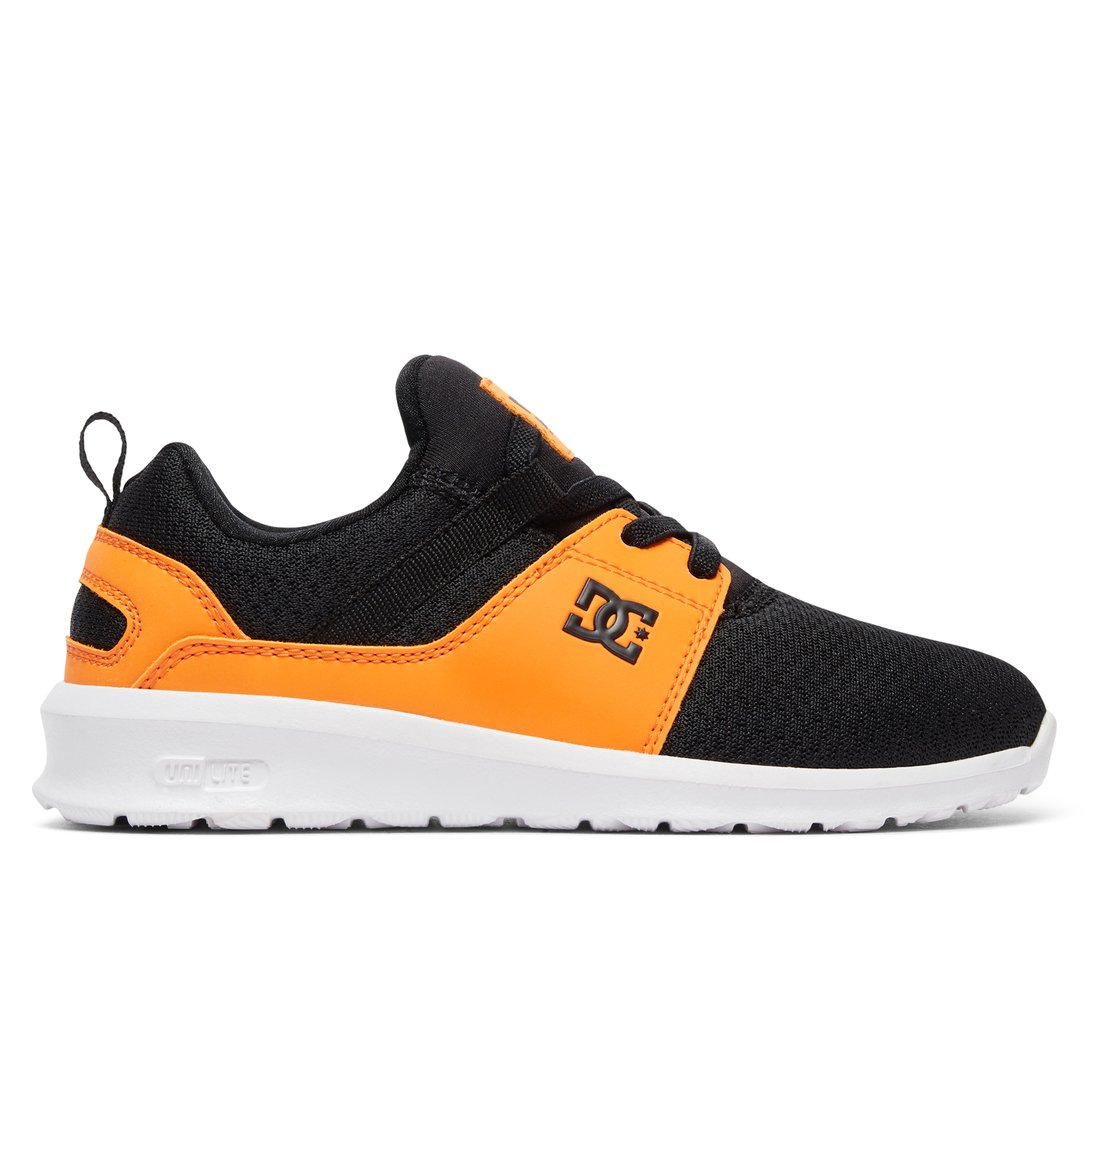 DC Shoes Heathrow - Shoes - Zapatos - Mujer - EU 37